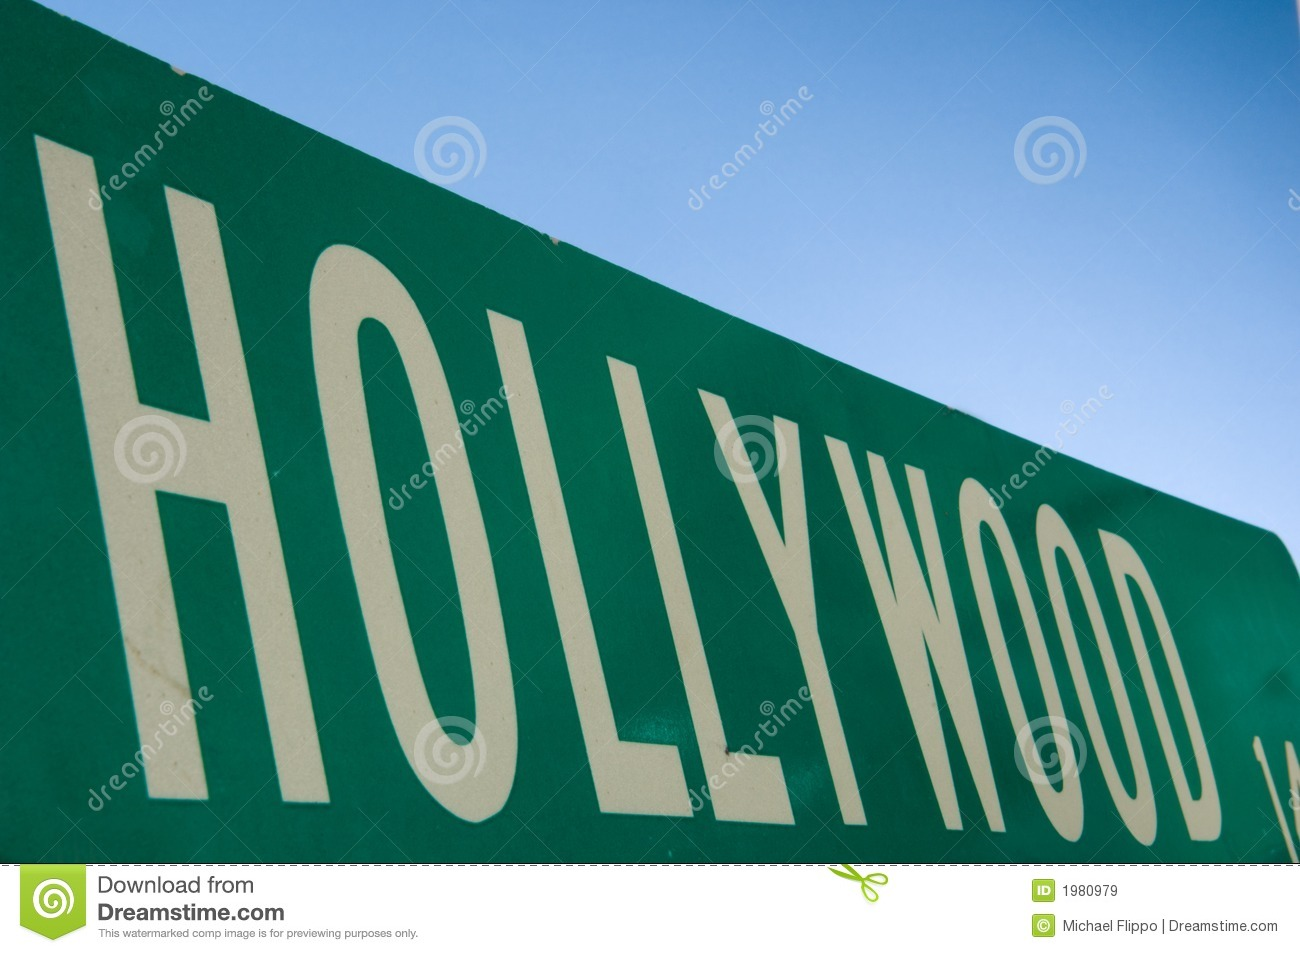 De straatteken van Hollywood